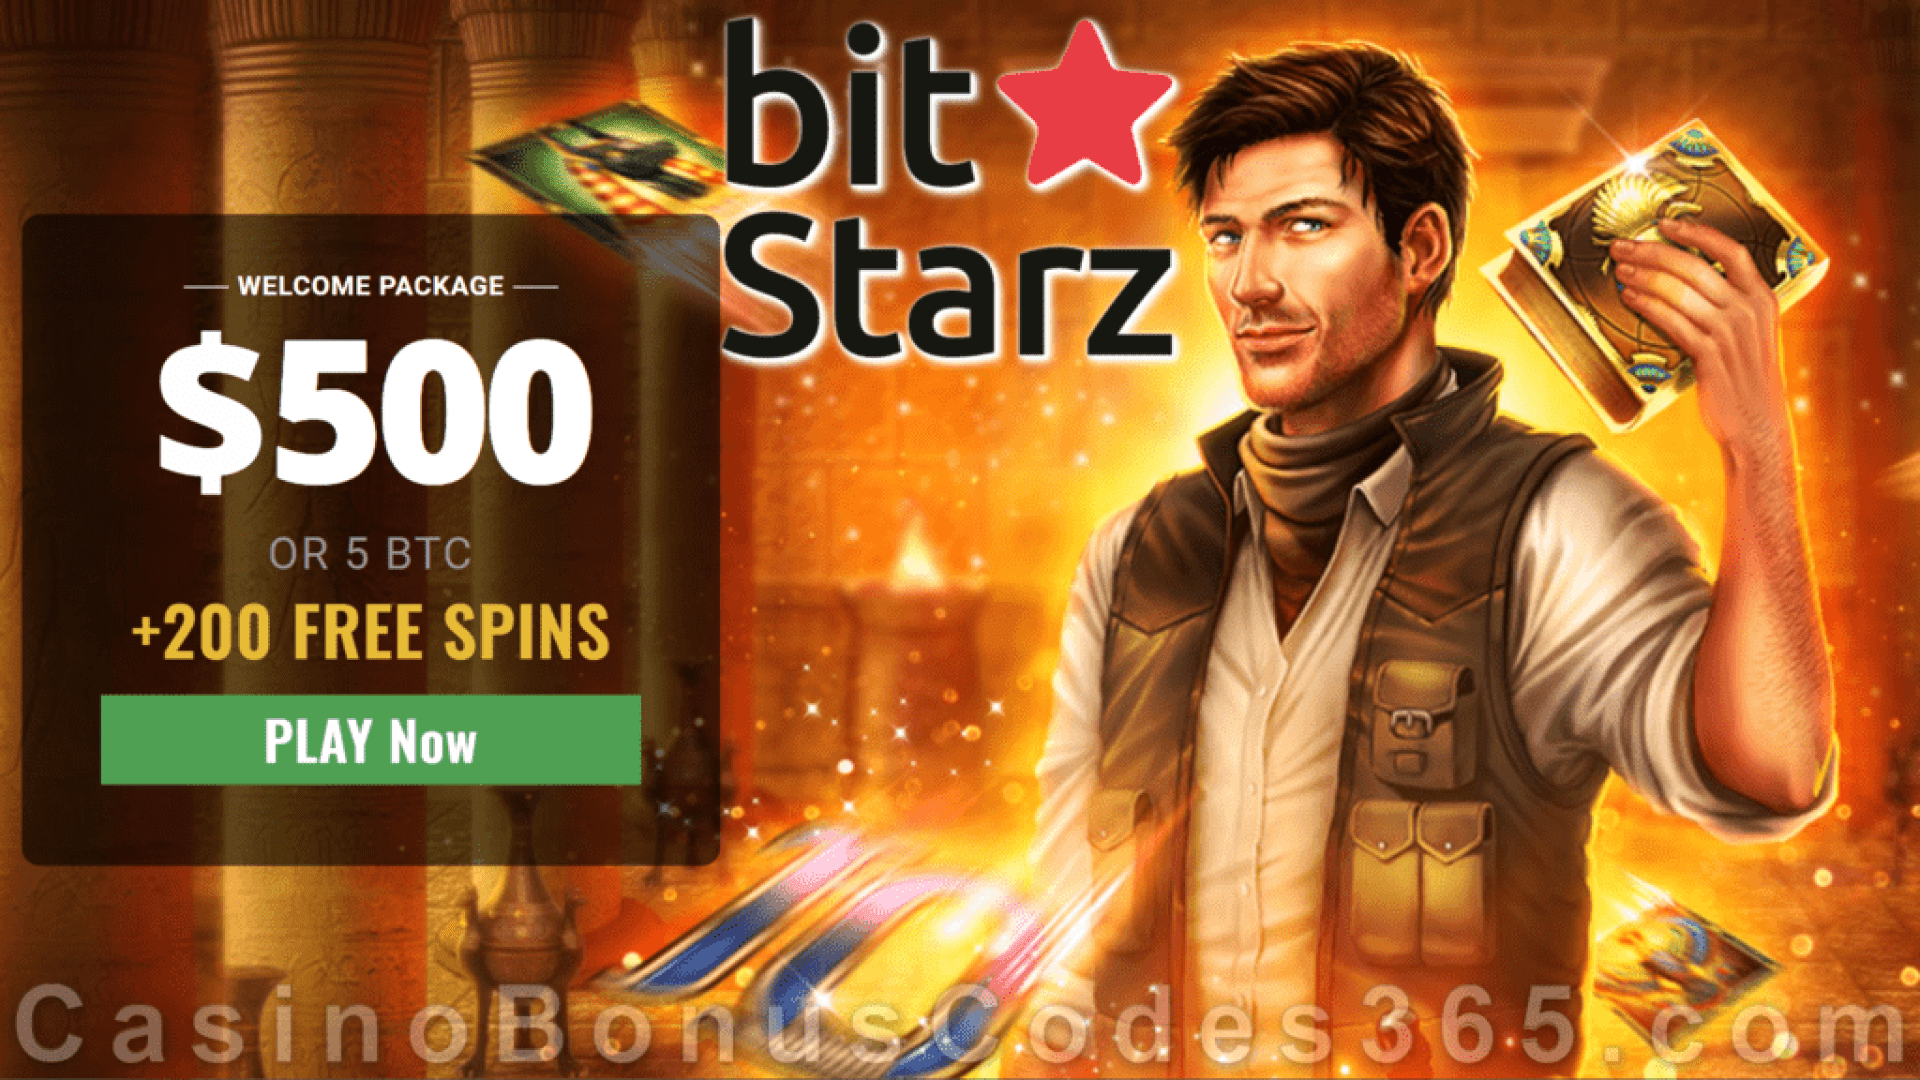 Bitstarz Casino $500 Bonus plus 200 FREE Spins Welcome Offer Play N Go Book of Dead